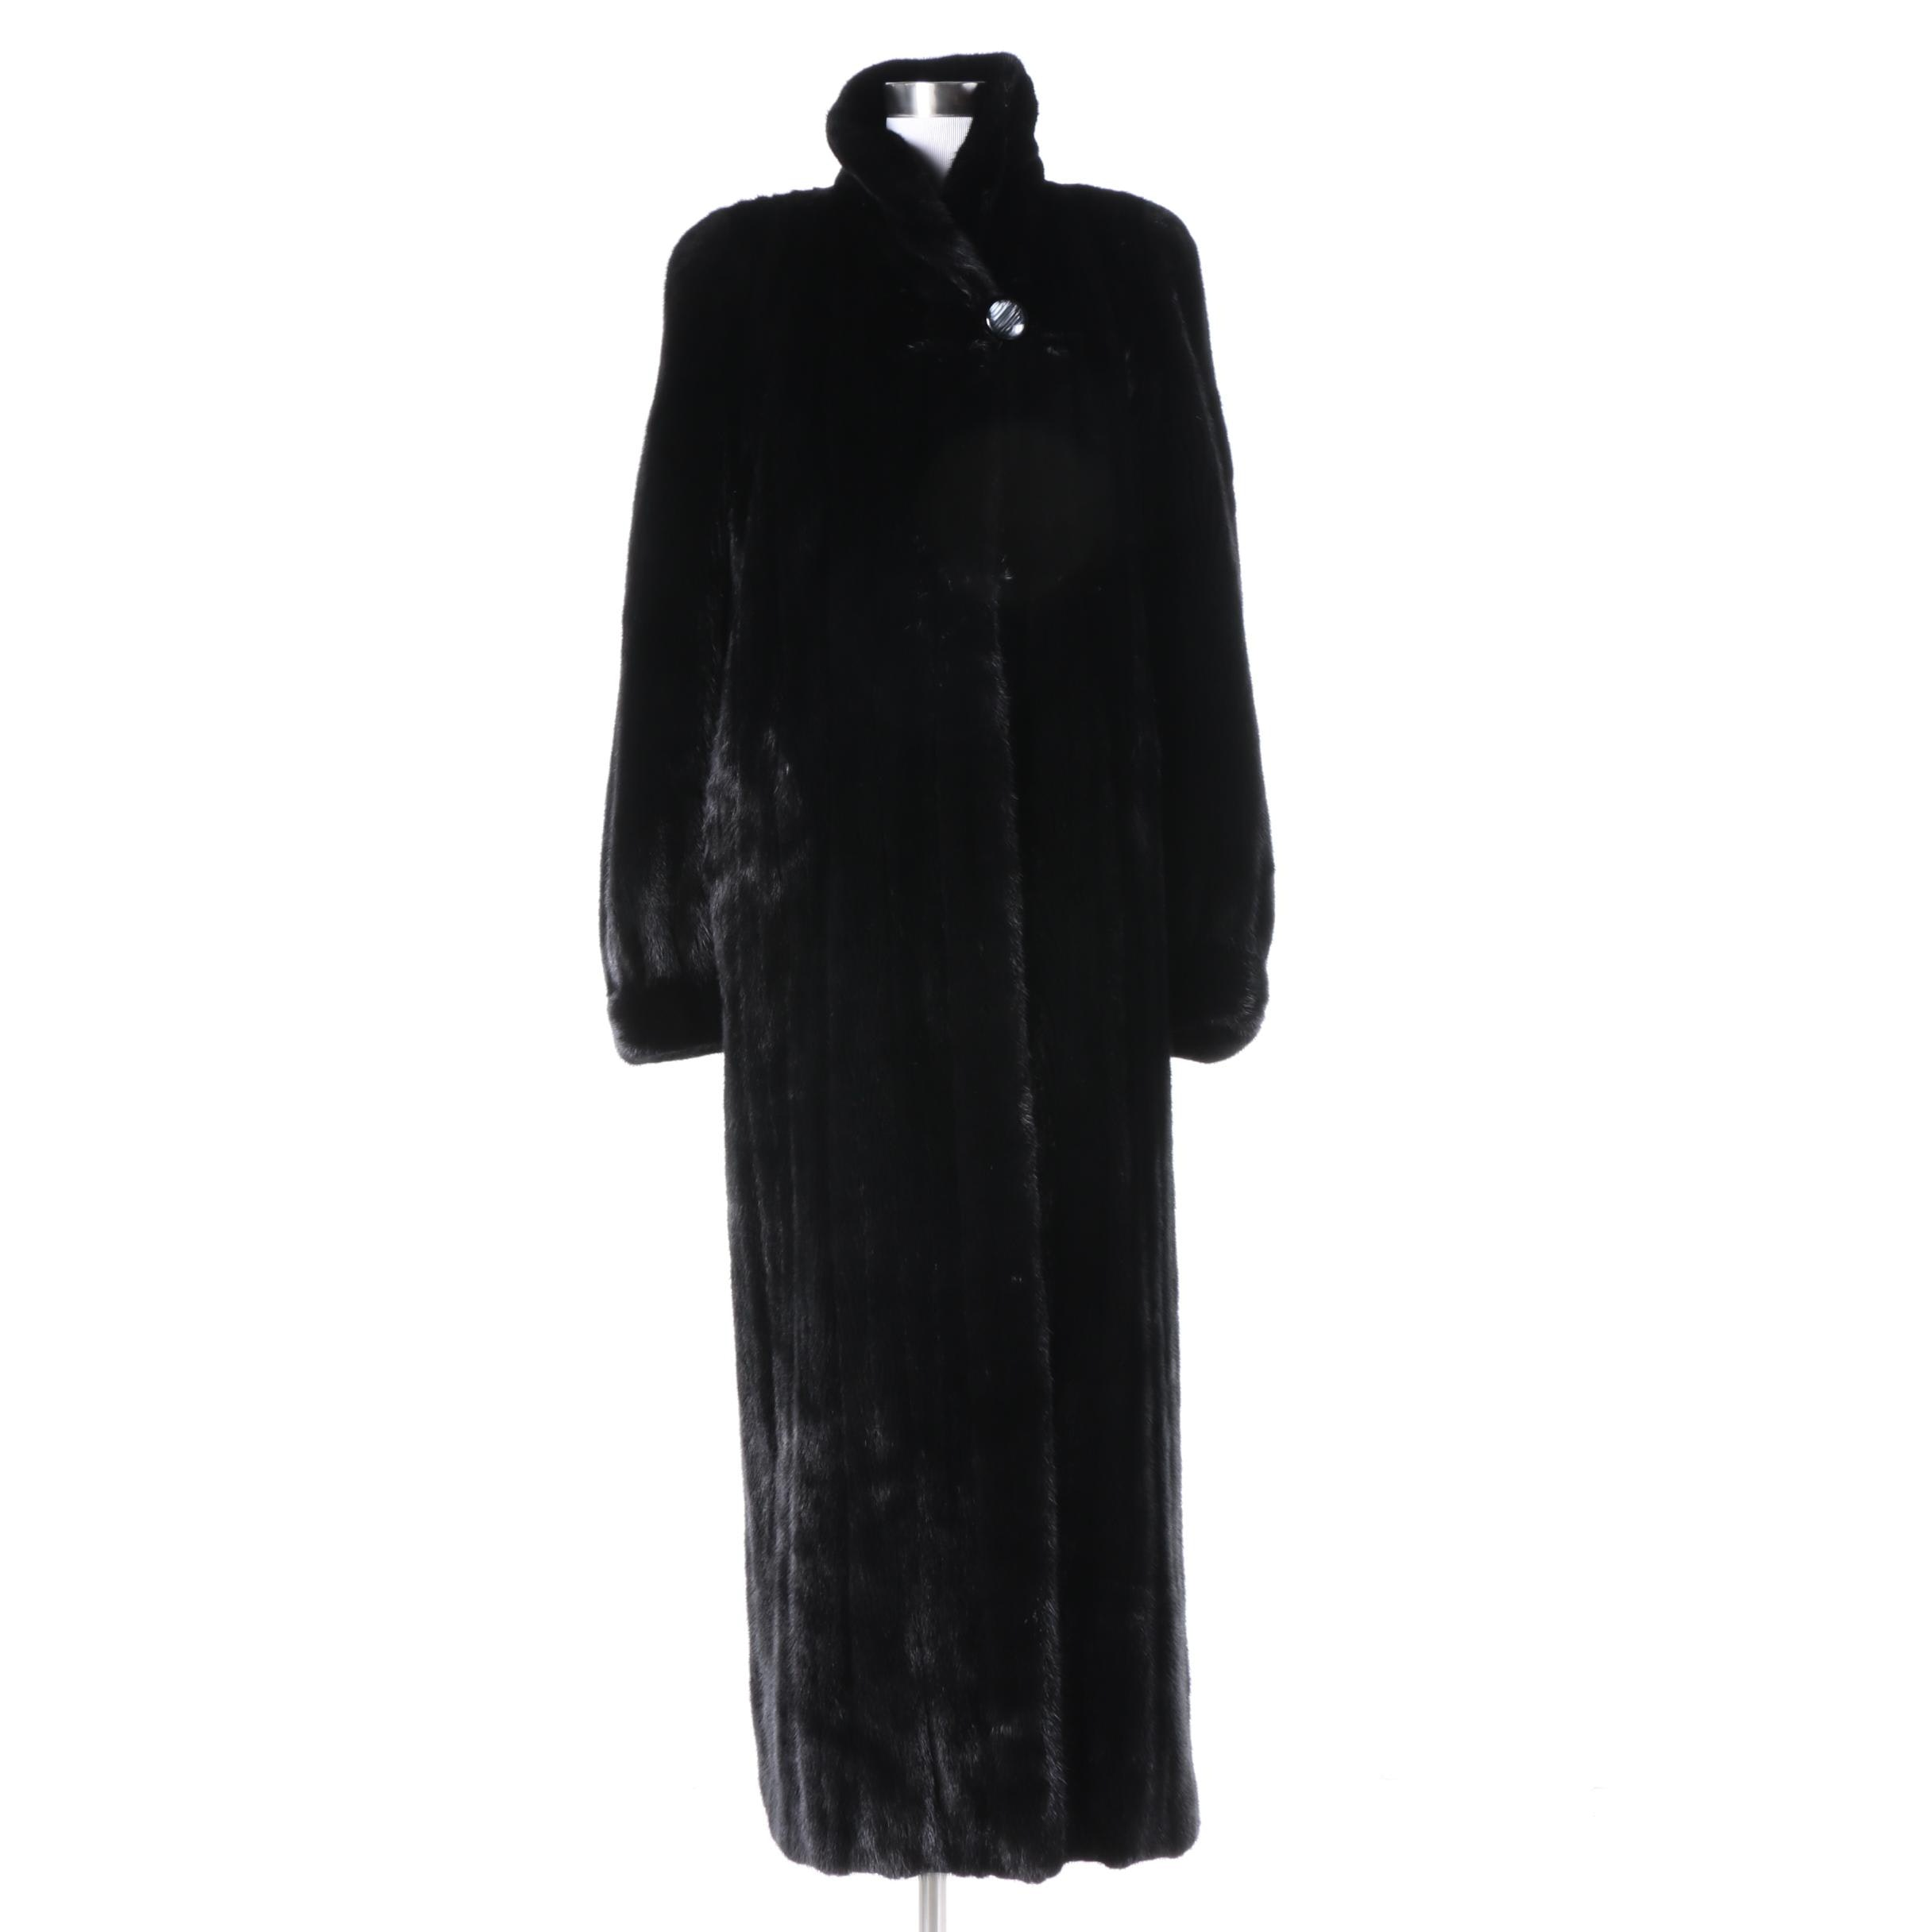 Women's Henig Furs Full-Length Black Mink Fur Coat